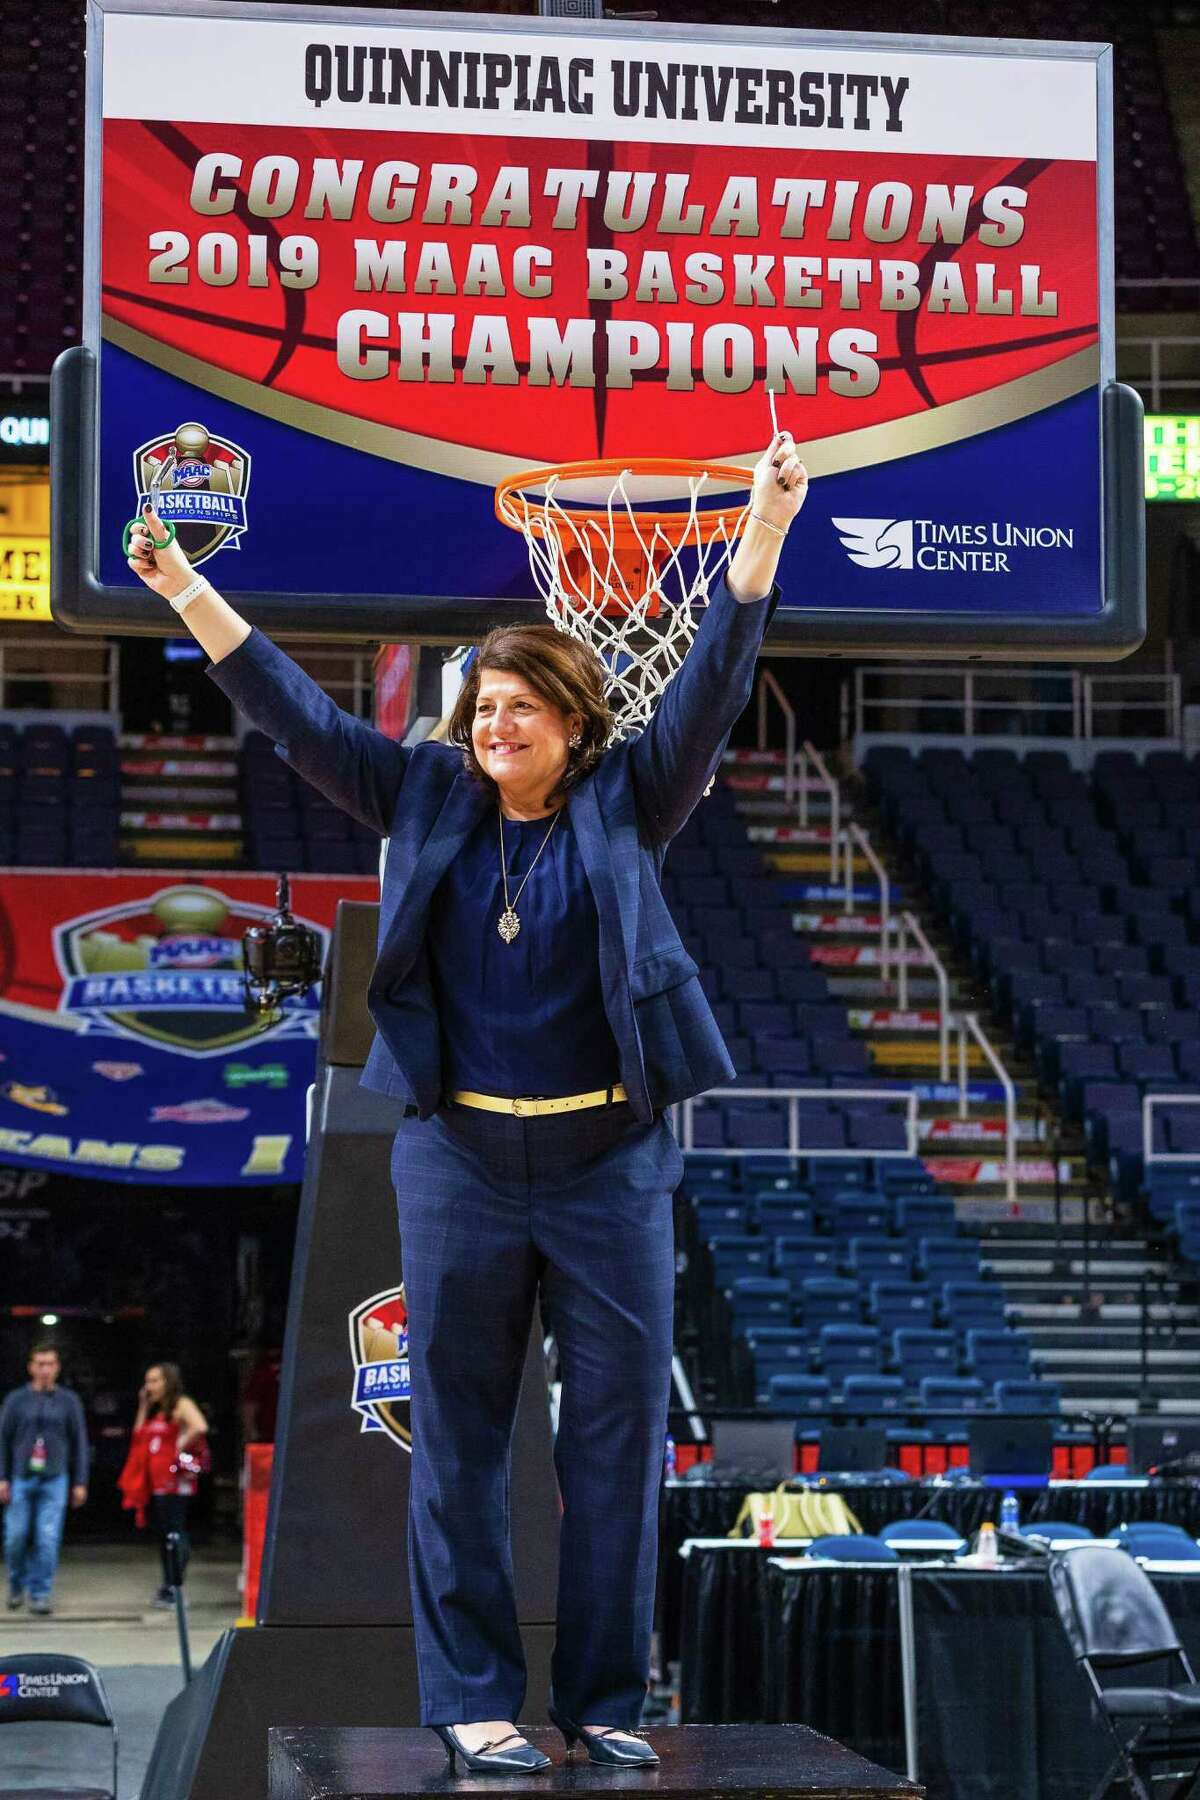 The Quinnipiac women's basketball team earned an NCAA tournament berth with a win in the MAAC championship.